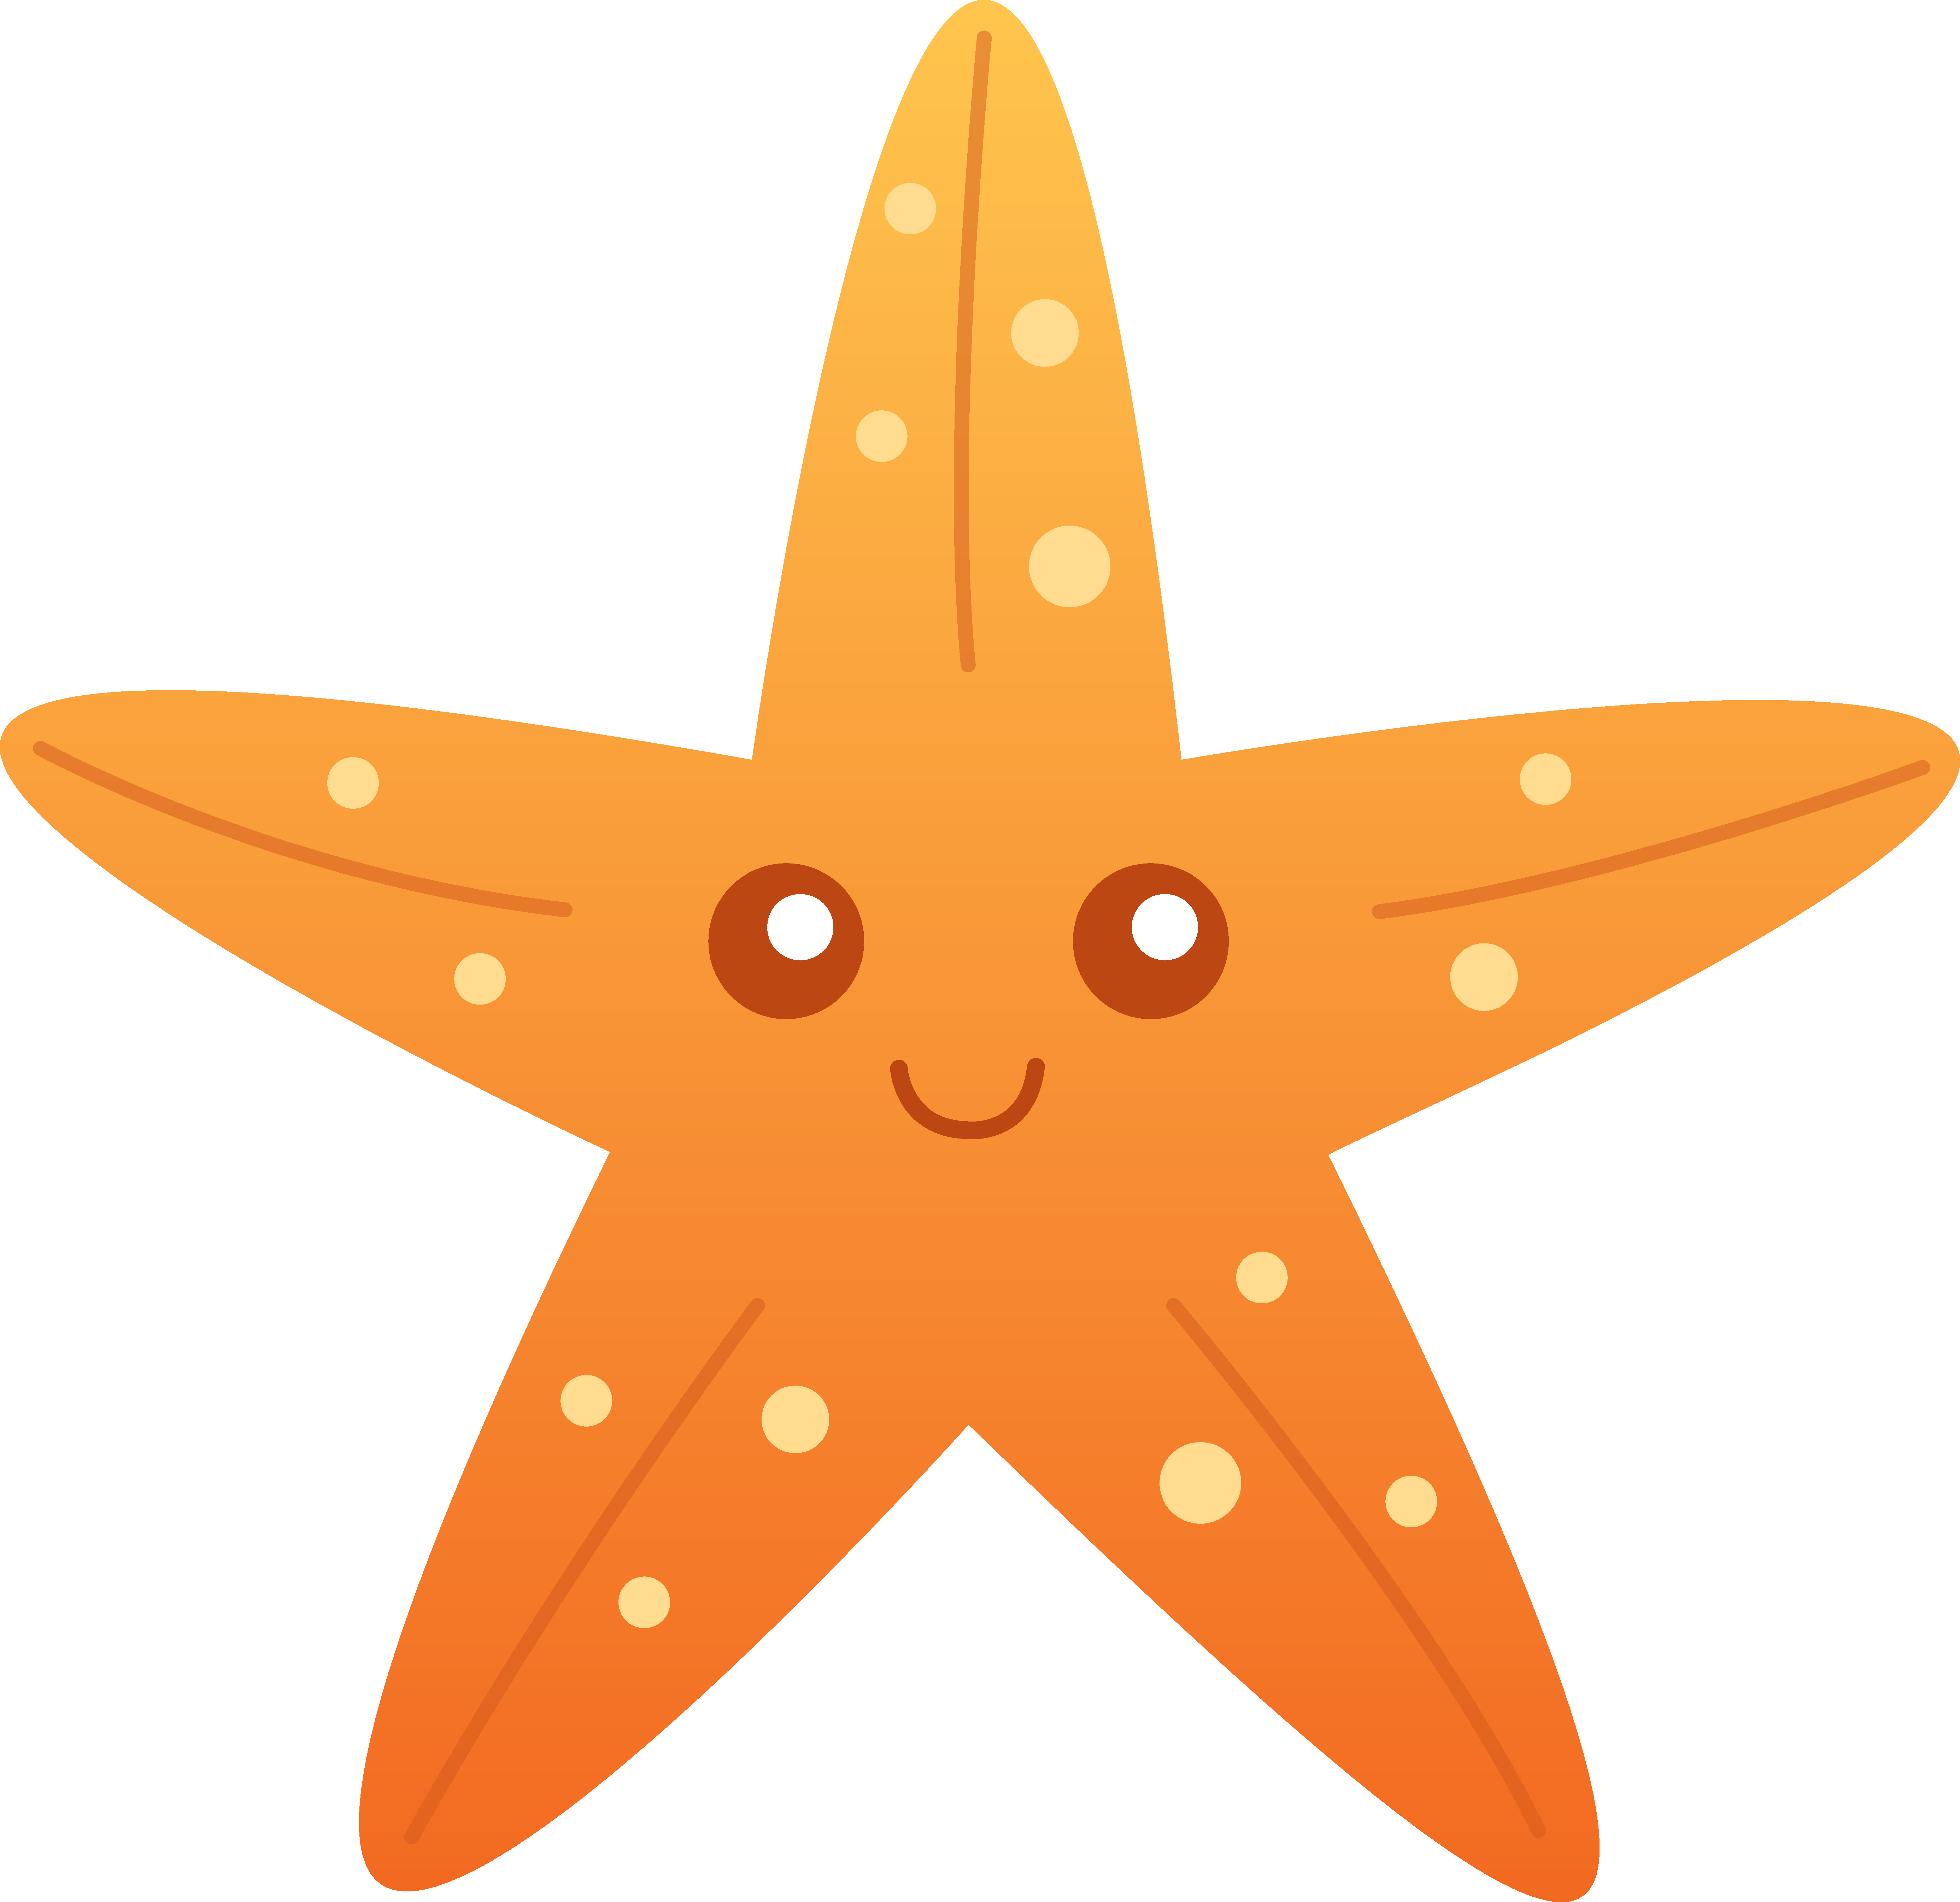 Star objects clipart clipart stock Cute Starfish Clipart | Clipart Panda - Free Clipart Images clipart stock